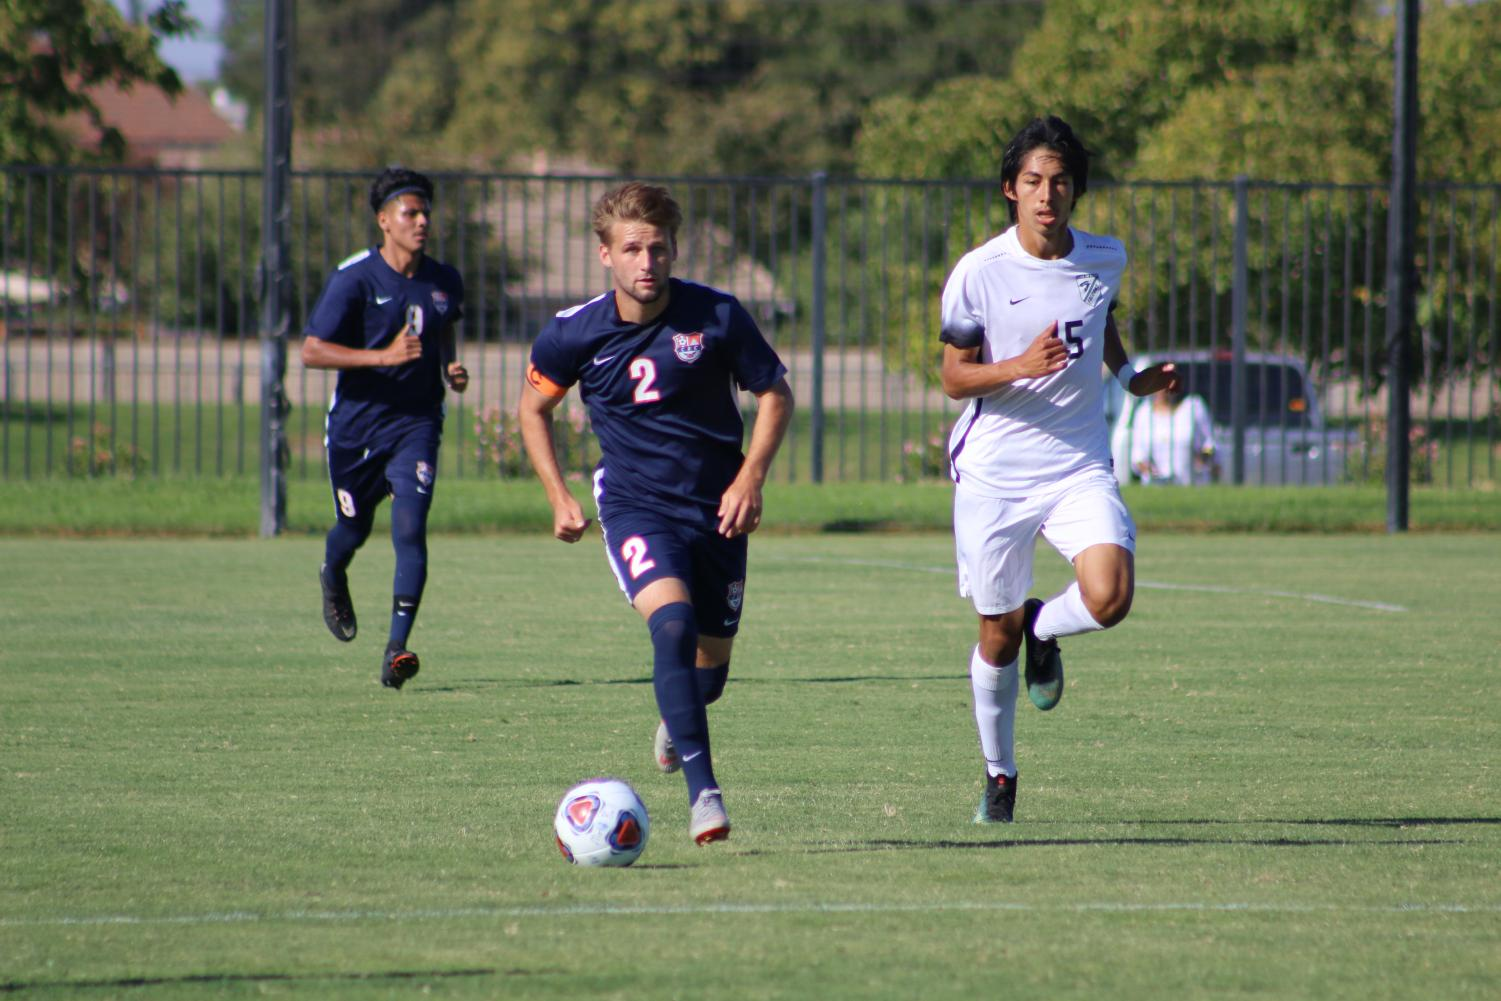 Freshman midfielder Dominic Maestretti helps lead a stifling Hawks defense. The Hawks are 0-0-2 in conference play and have surrendered only one goal in their last five games.